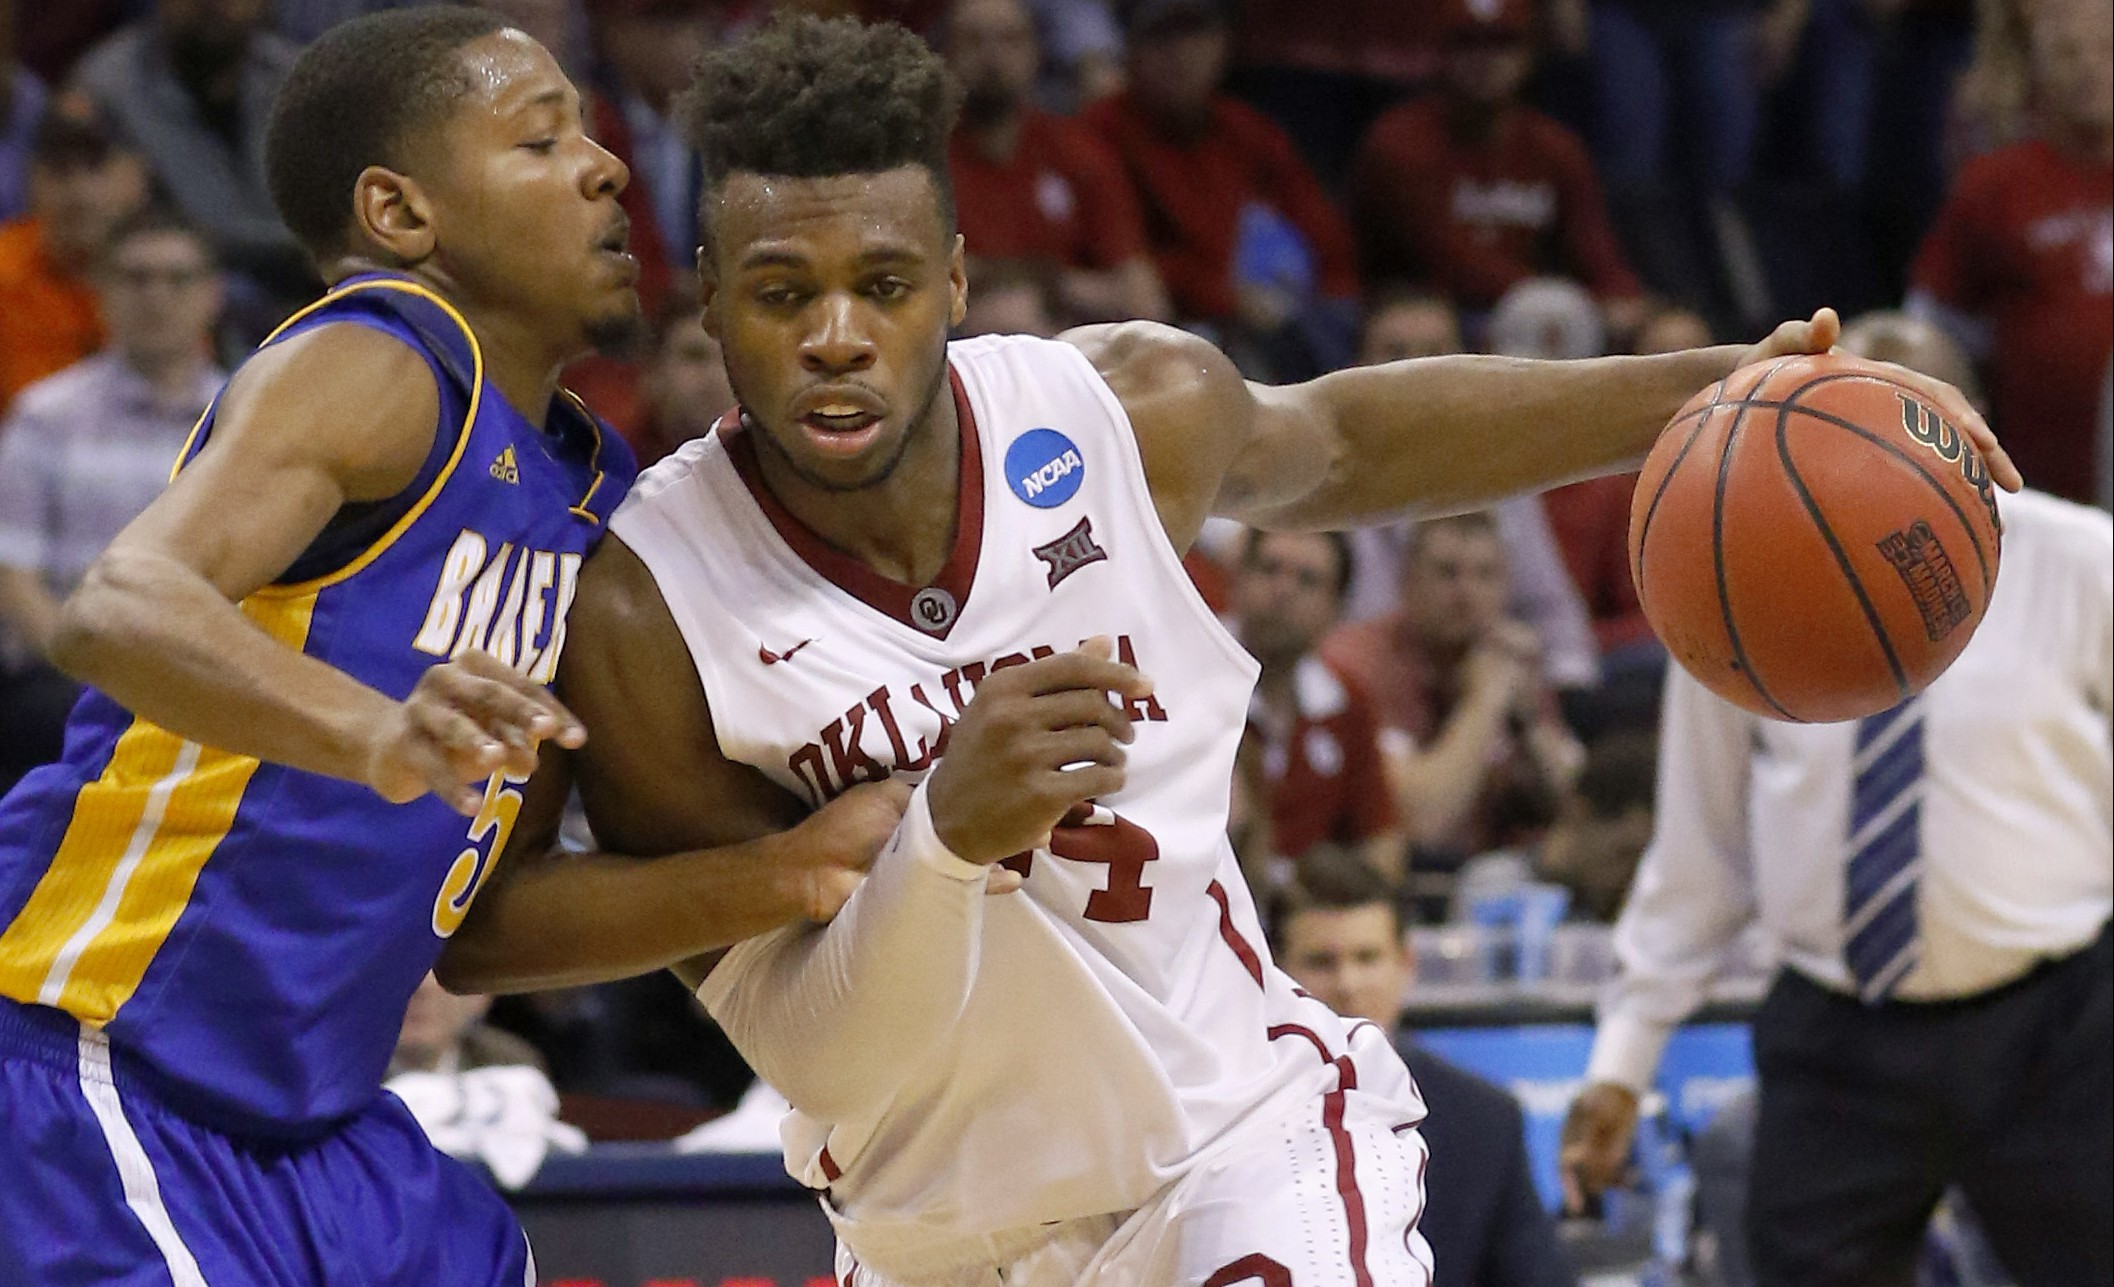 Oklahoma guard Buddy Hield (24) drives to the basket around Cal State Bakersfield guard Dedrick Basile (5) in the second half during a first-round men's college basketball game in the NCAA Tournament in Oklahoma City, Friday, March 18, 2016. Oklahoma won 82-68. (AP Photo/Alonzo Adams)